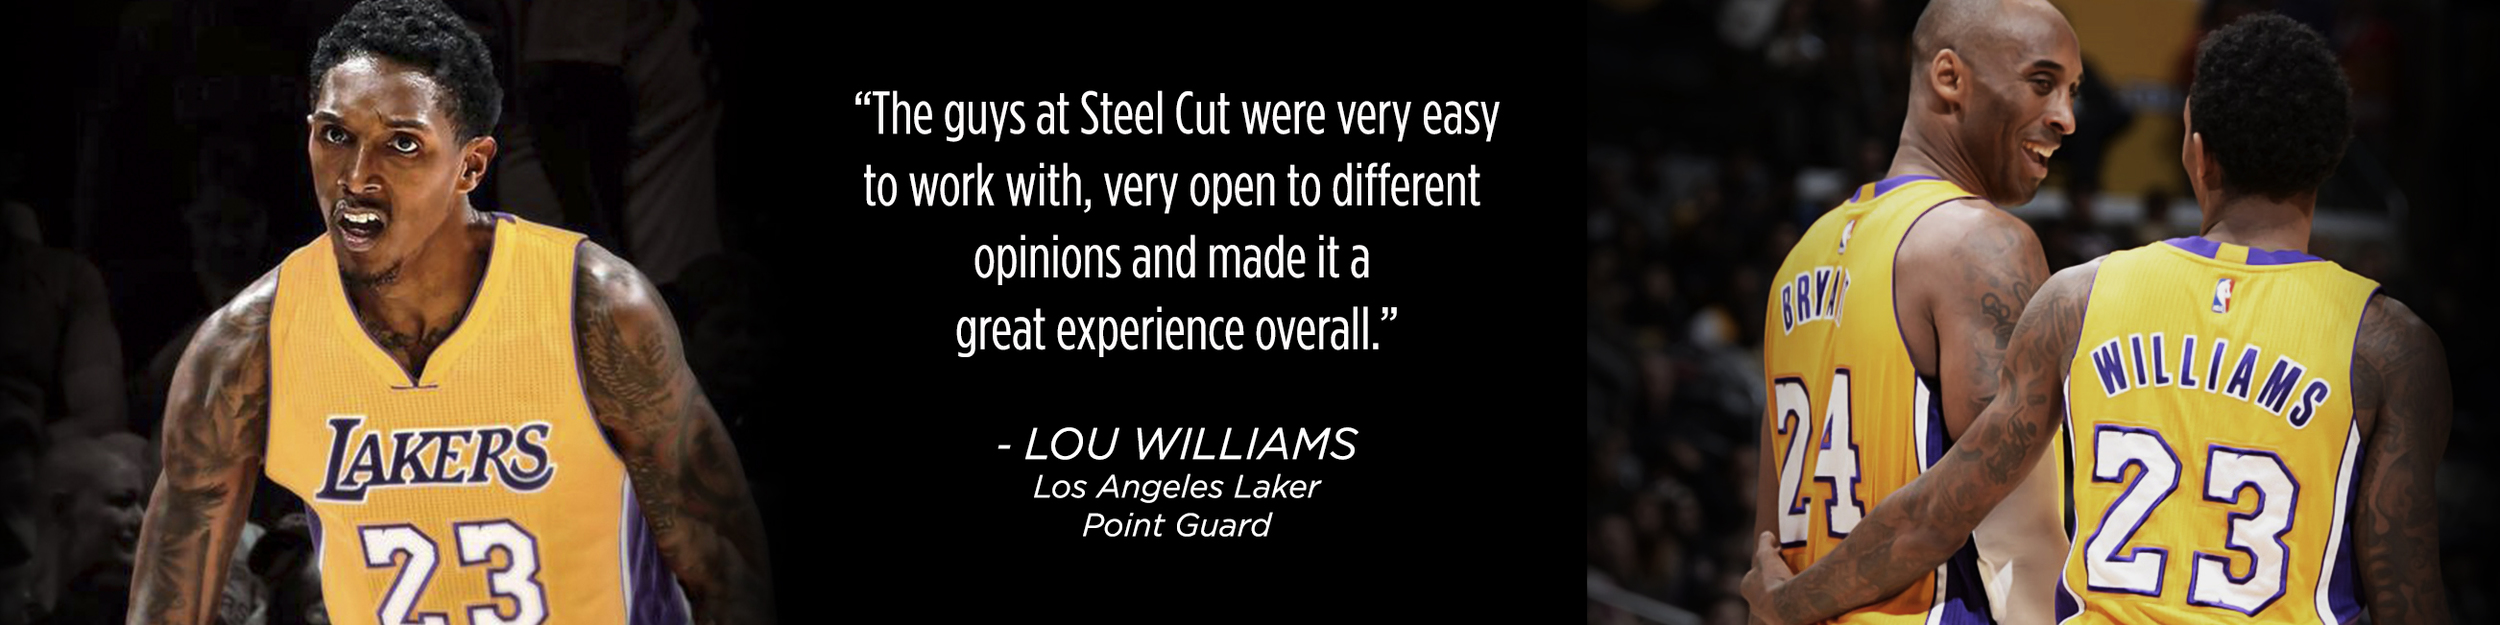 Lou Williams Testimonials.jpg